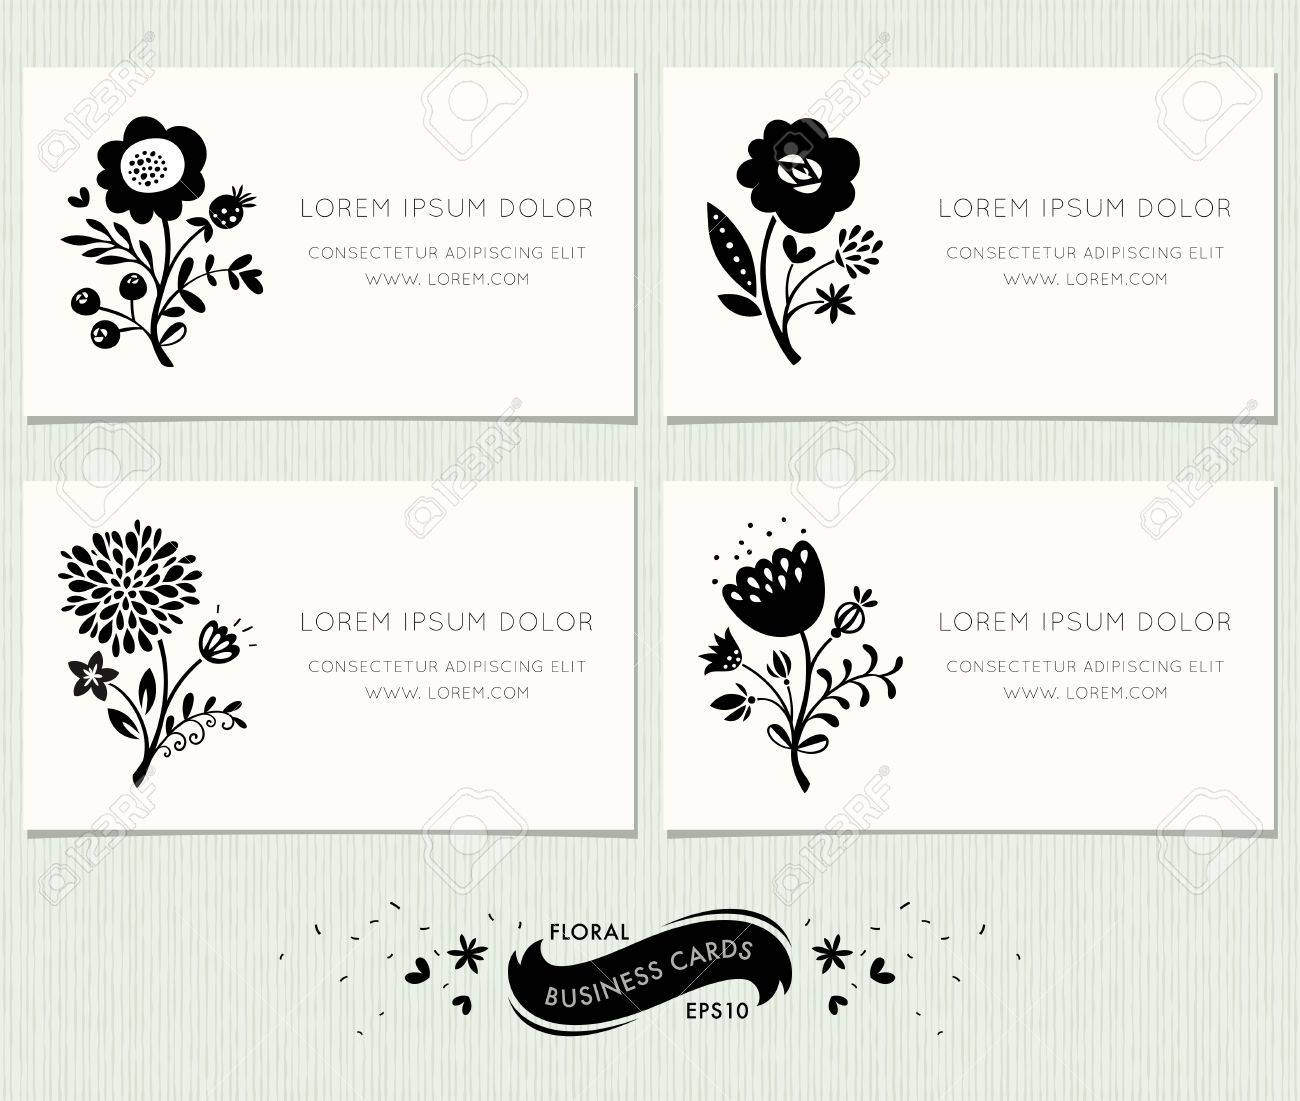 Set of floral business cards. Ornate floral design in modern style with decorative floral elements. Complied with the standard sizes. - 60000901